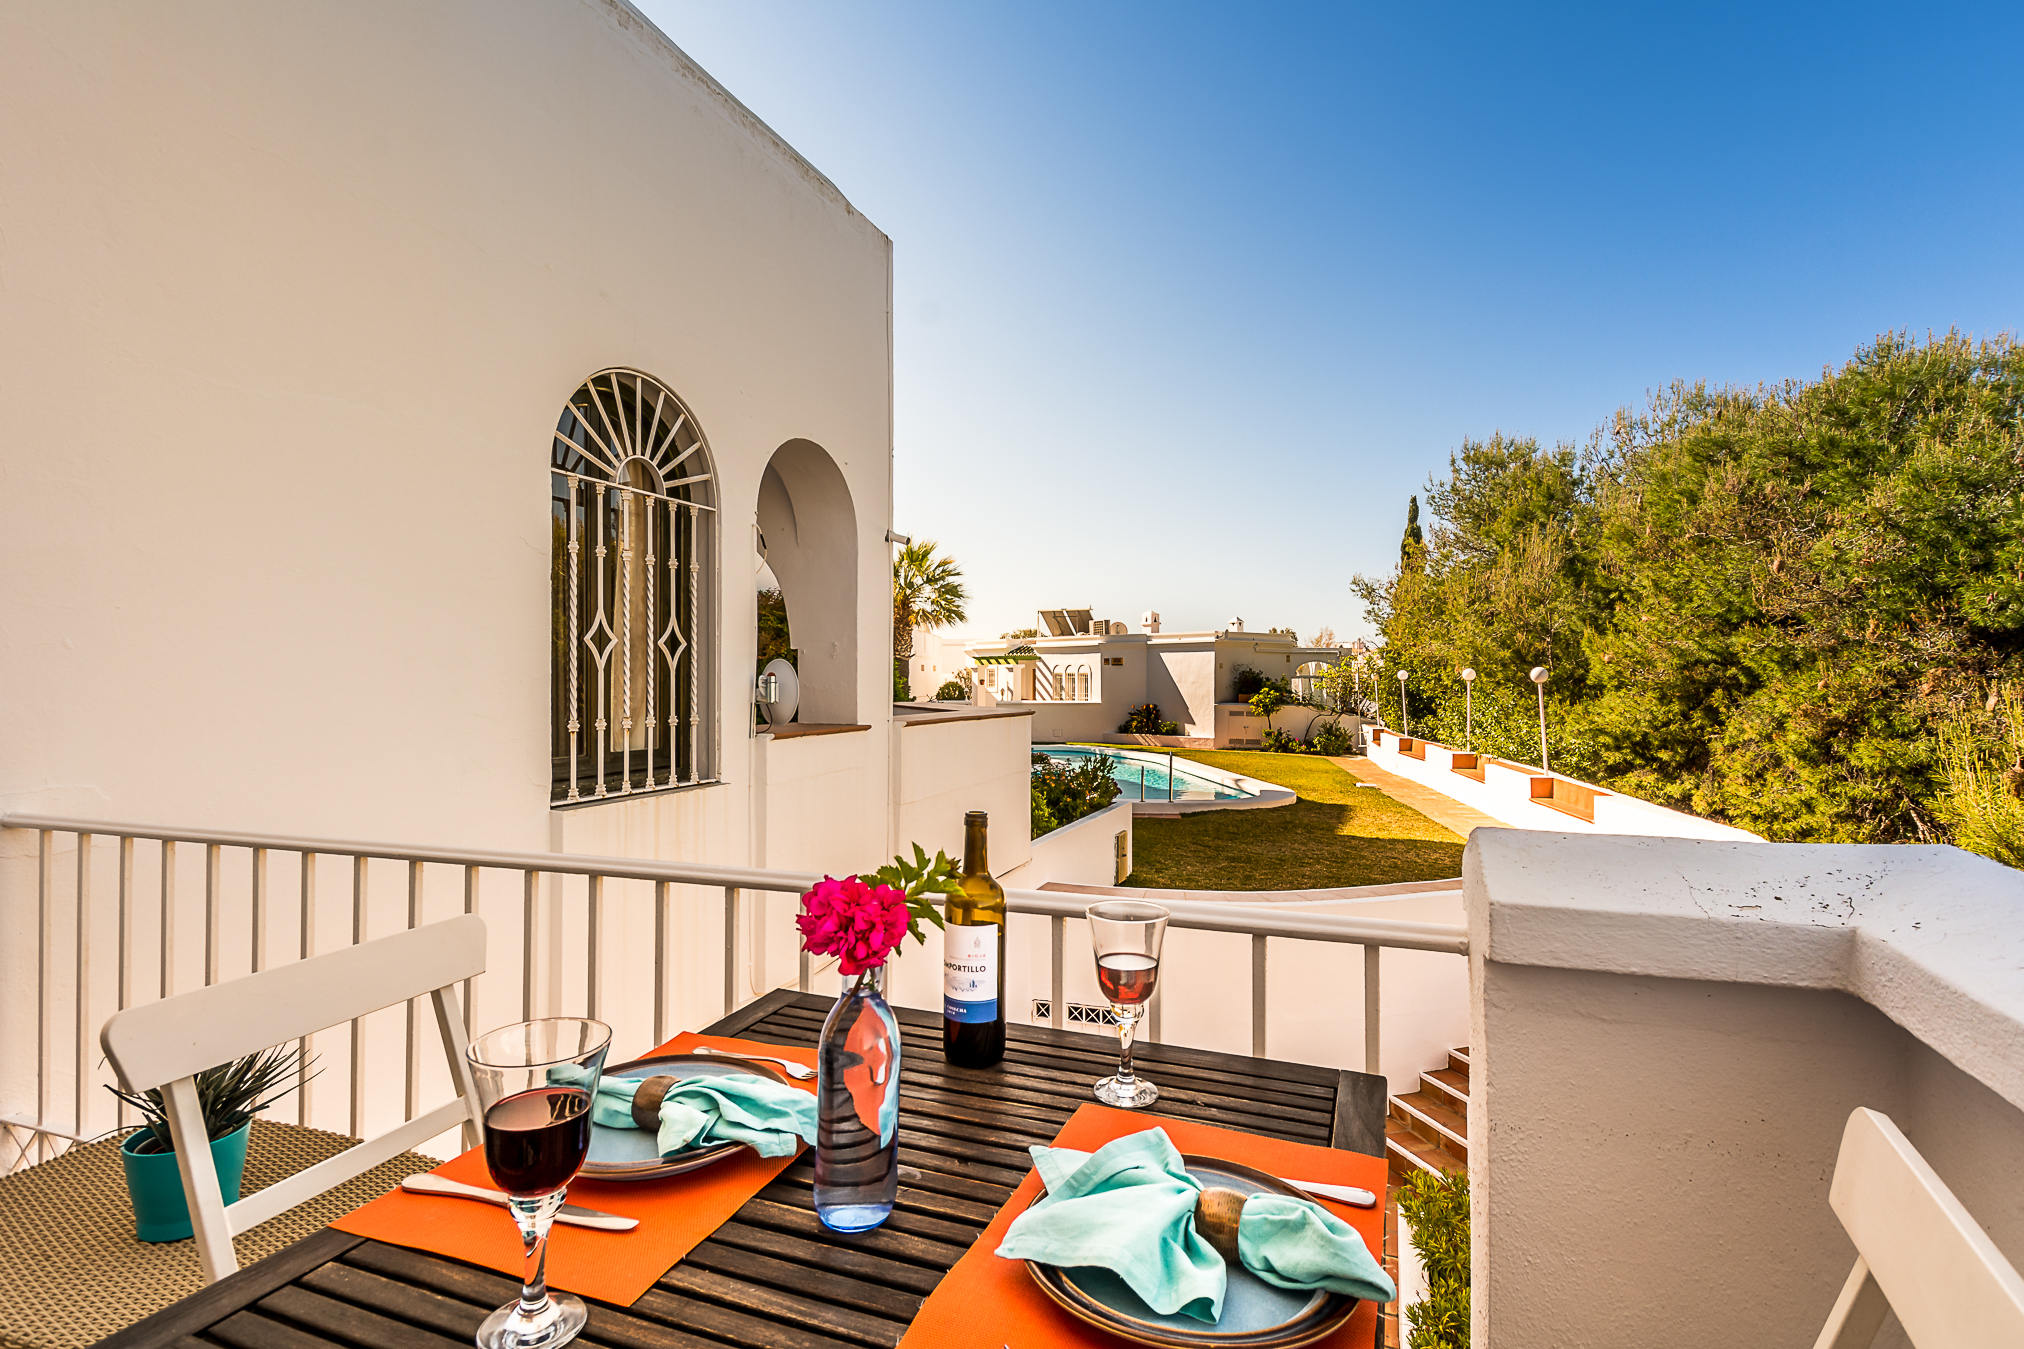 JFRES Nerja self catering   Residensol apartments